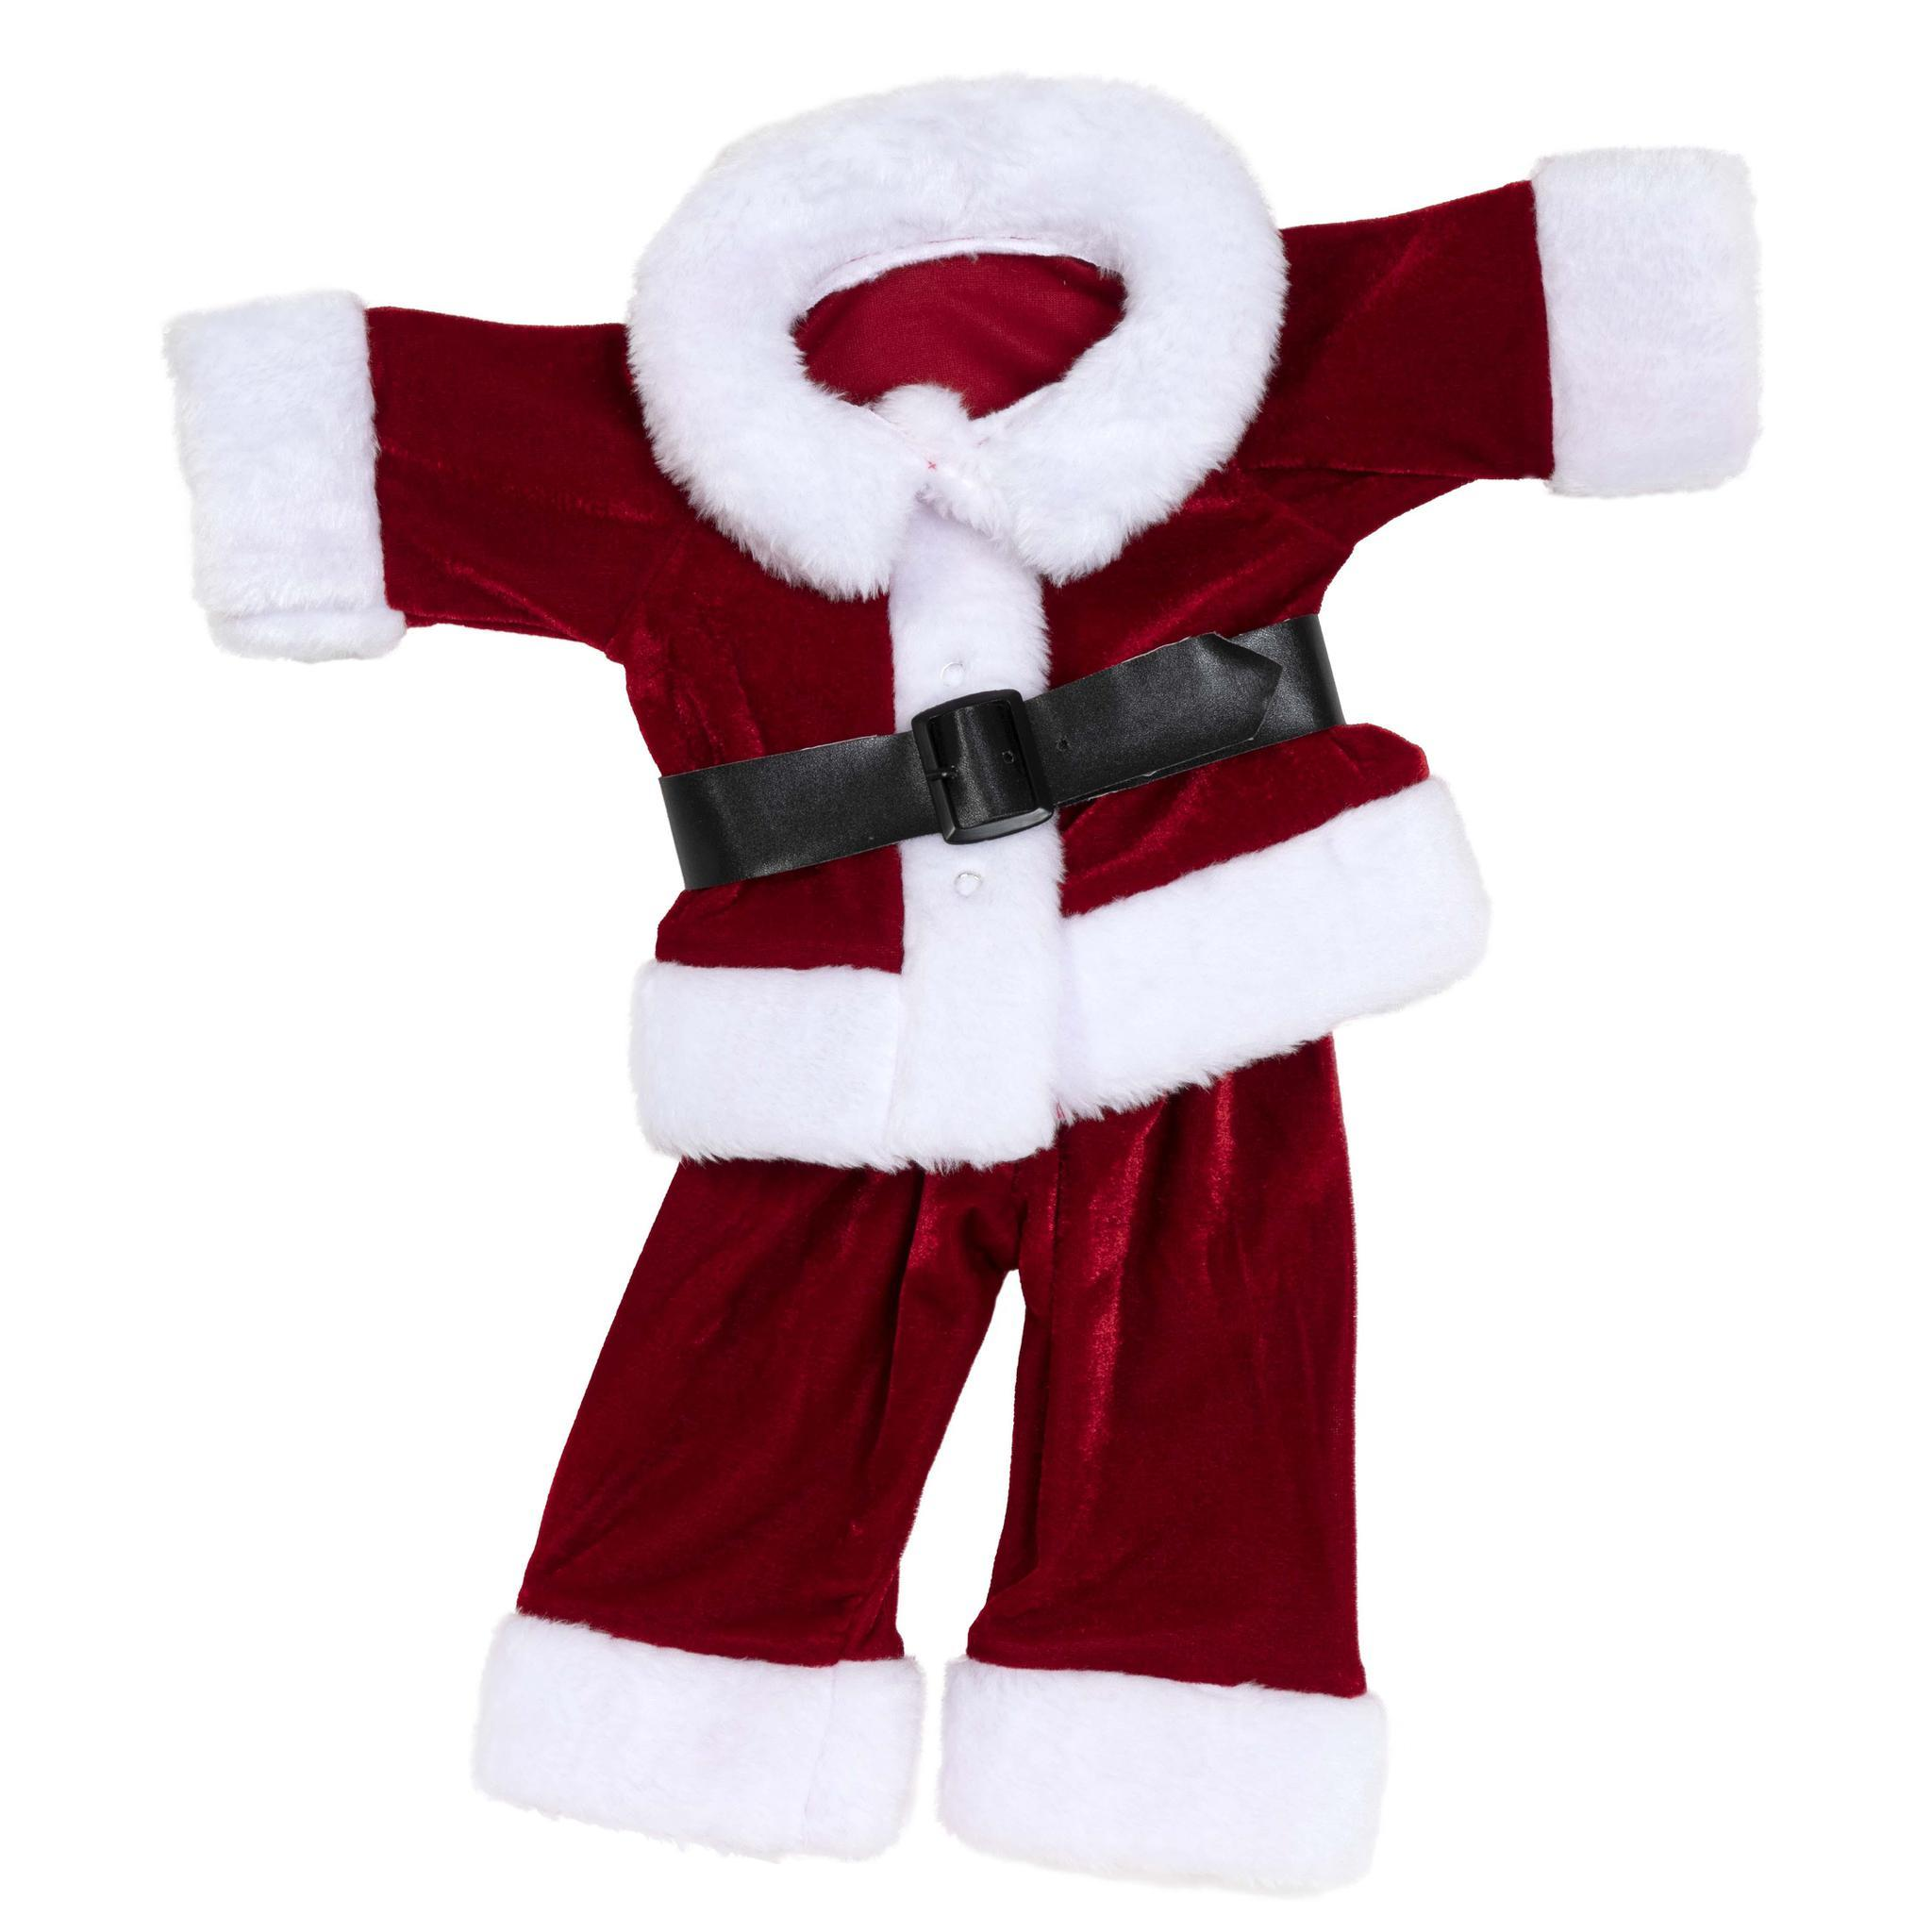 BabyLand Collection C Outfit Santa Suit